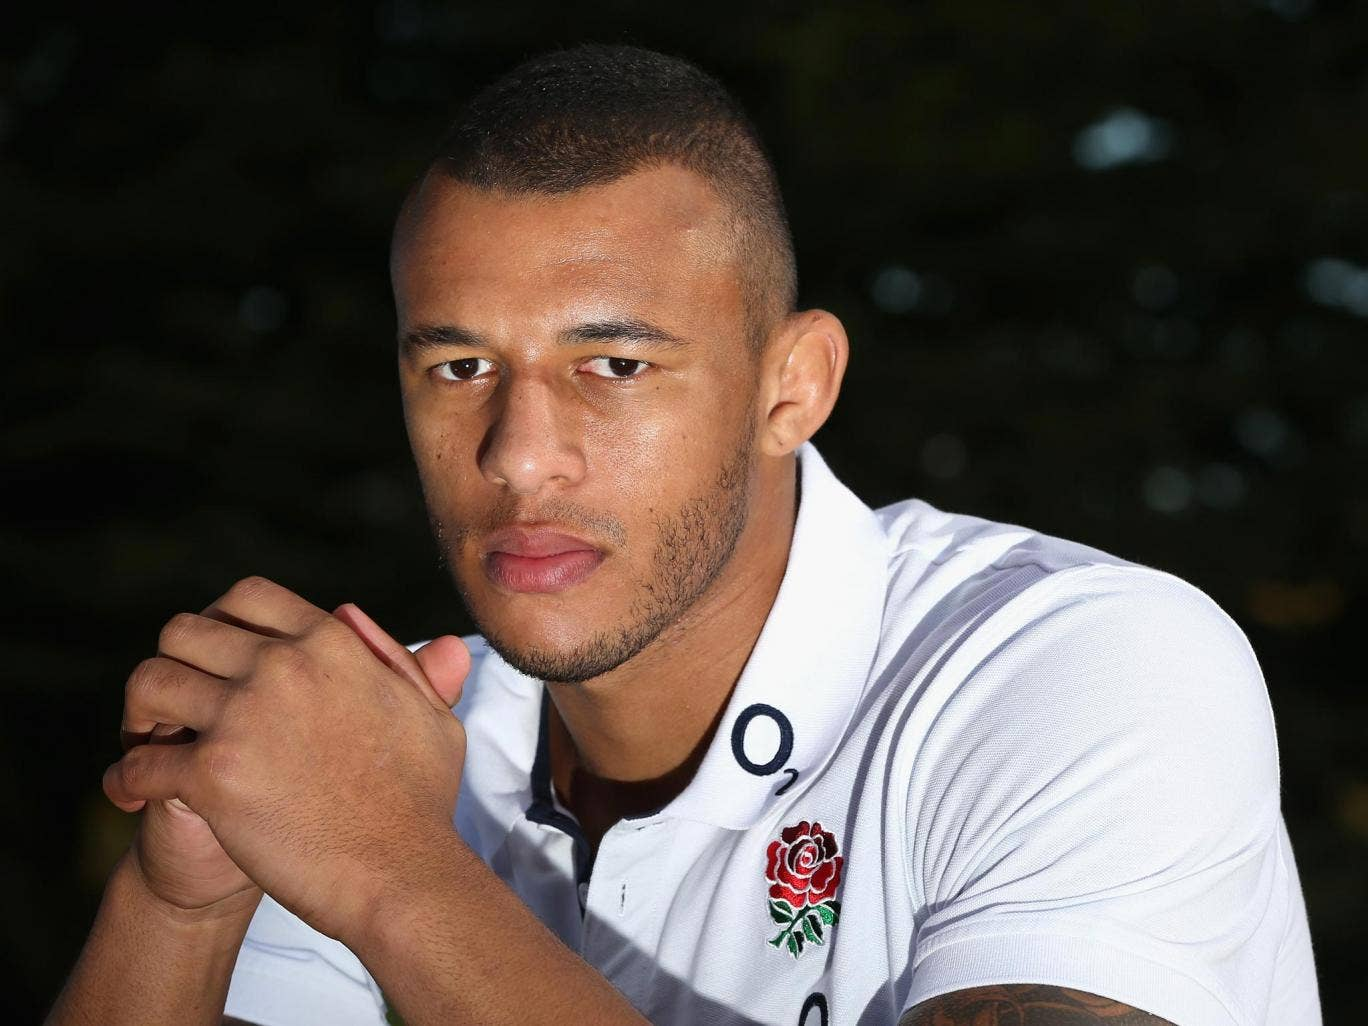 Courtney Lawes looks every inch the part in an England shirt